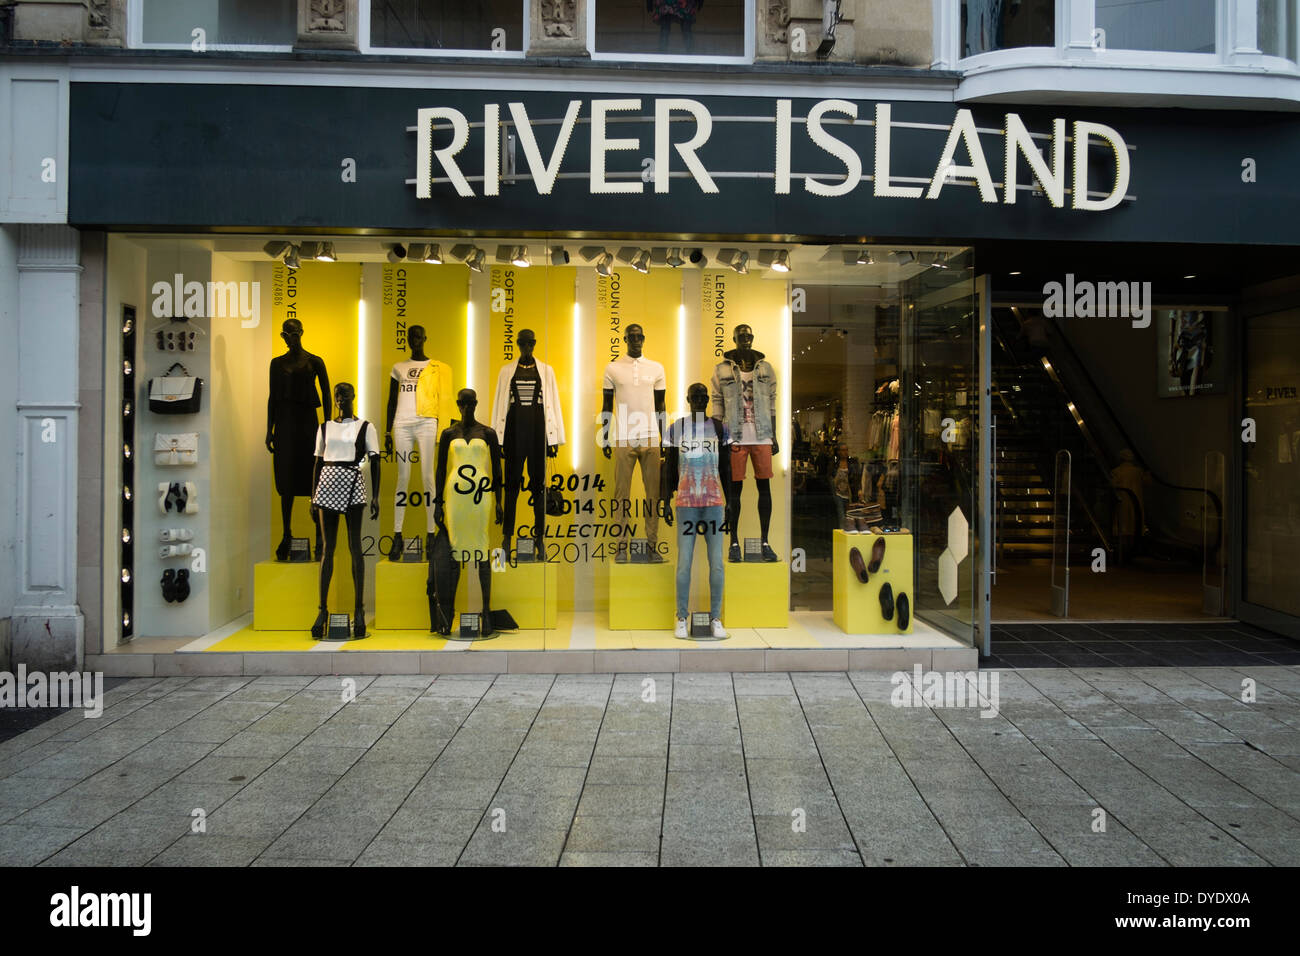 River Island Lakeside West Thurrock